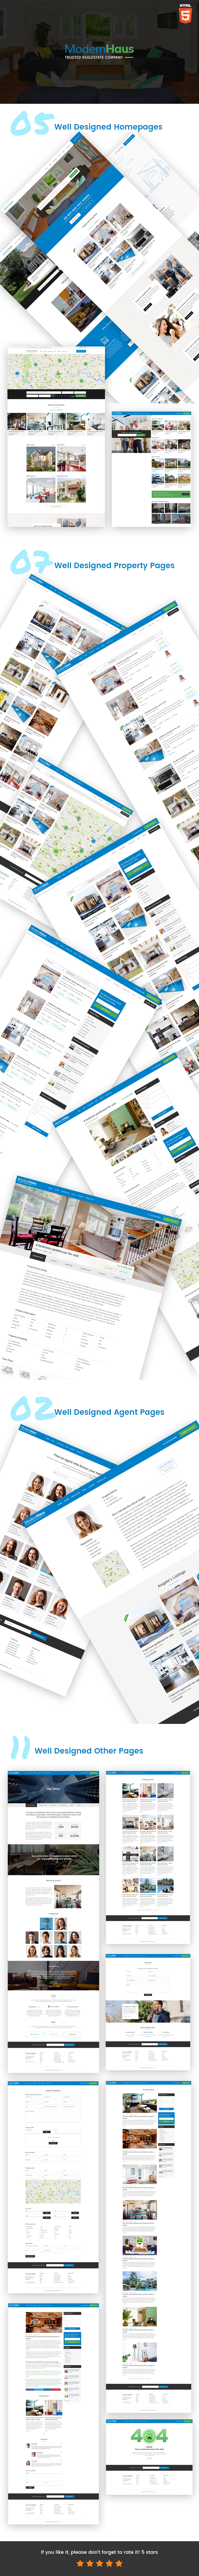 ModernHaus - Real Estate HTML Template - 1